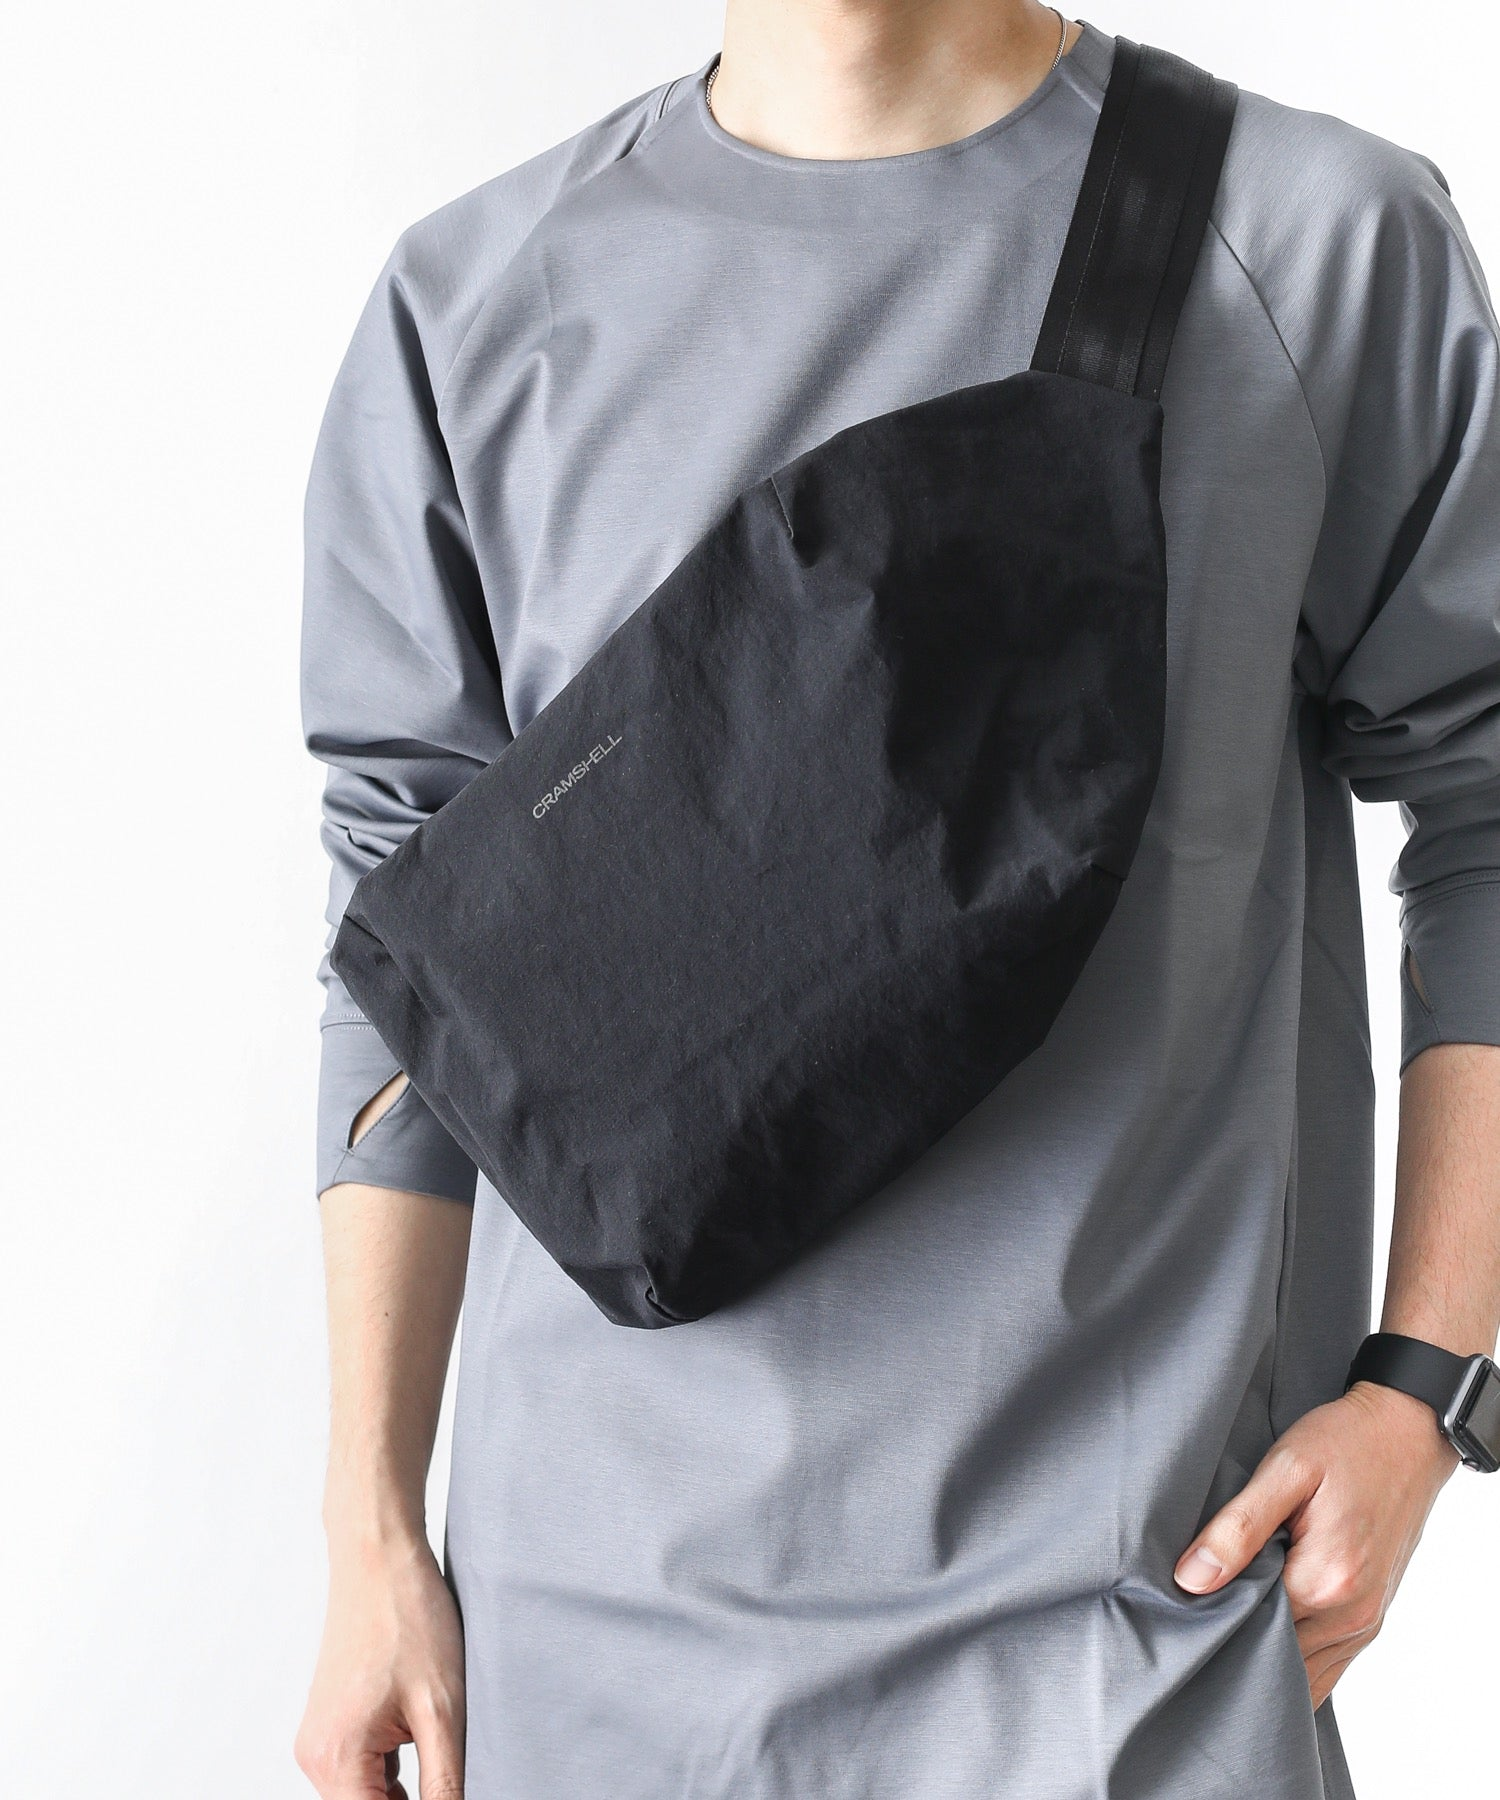 【 SALE / CRAMSHELL 】*SQUARE SLING BAG